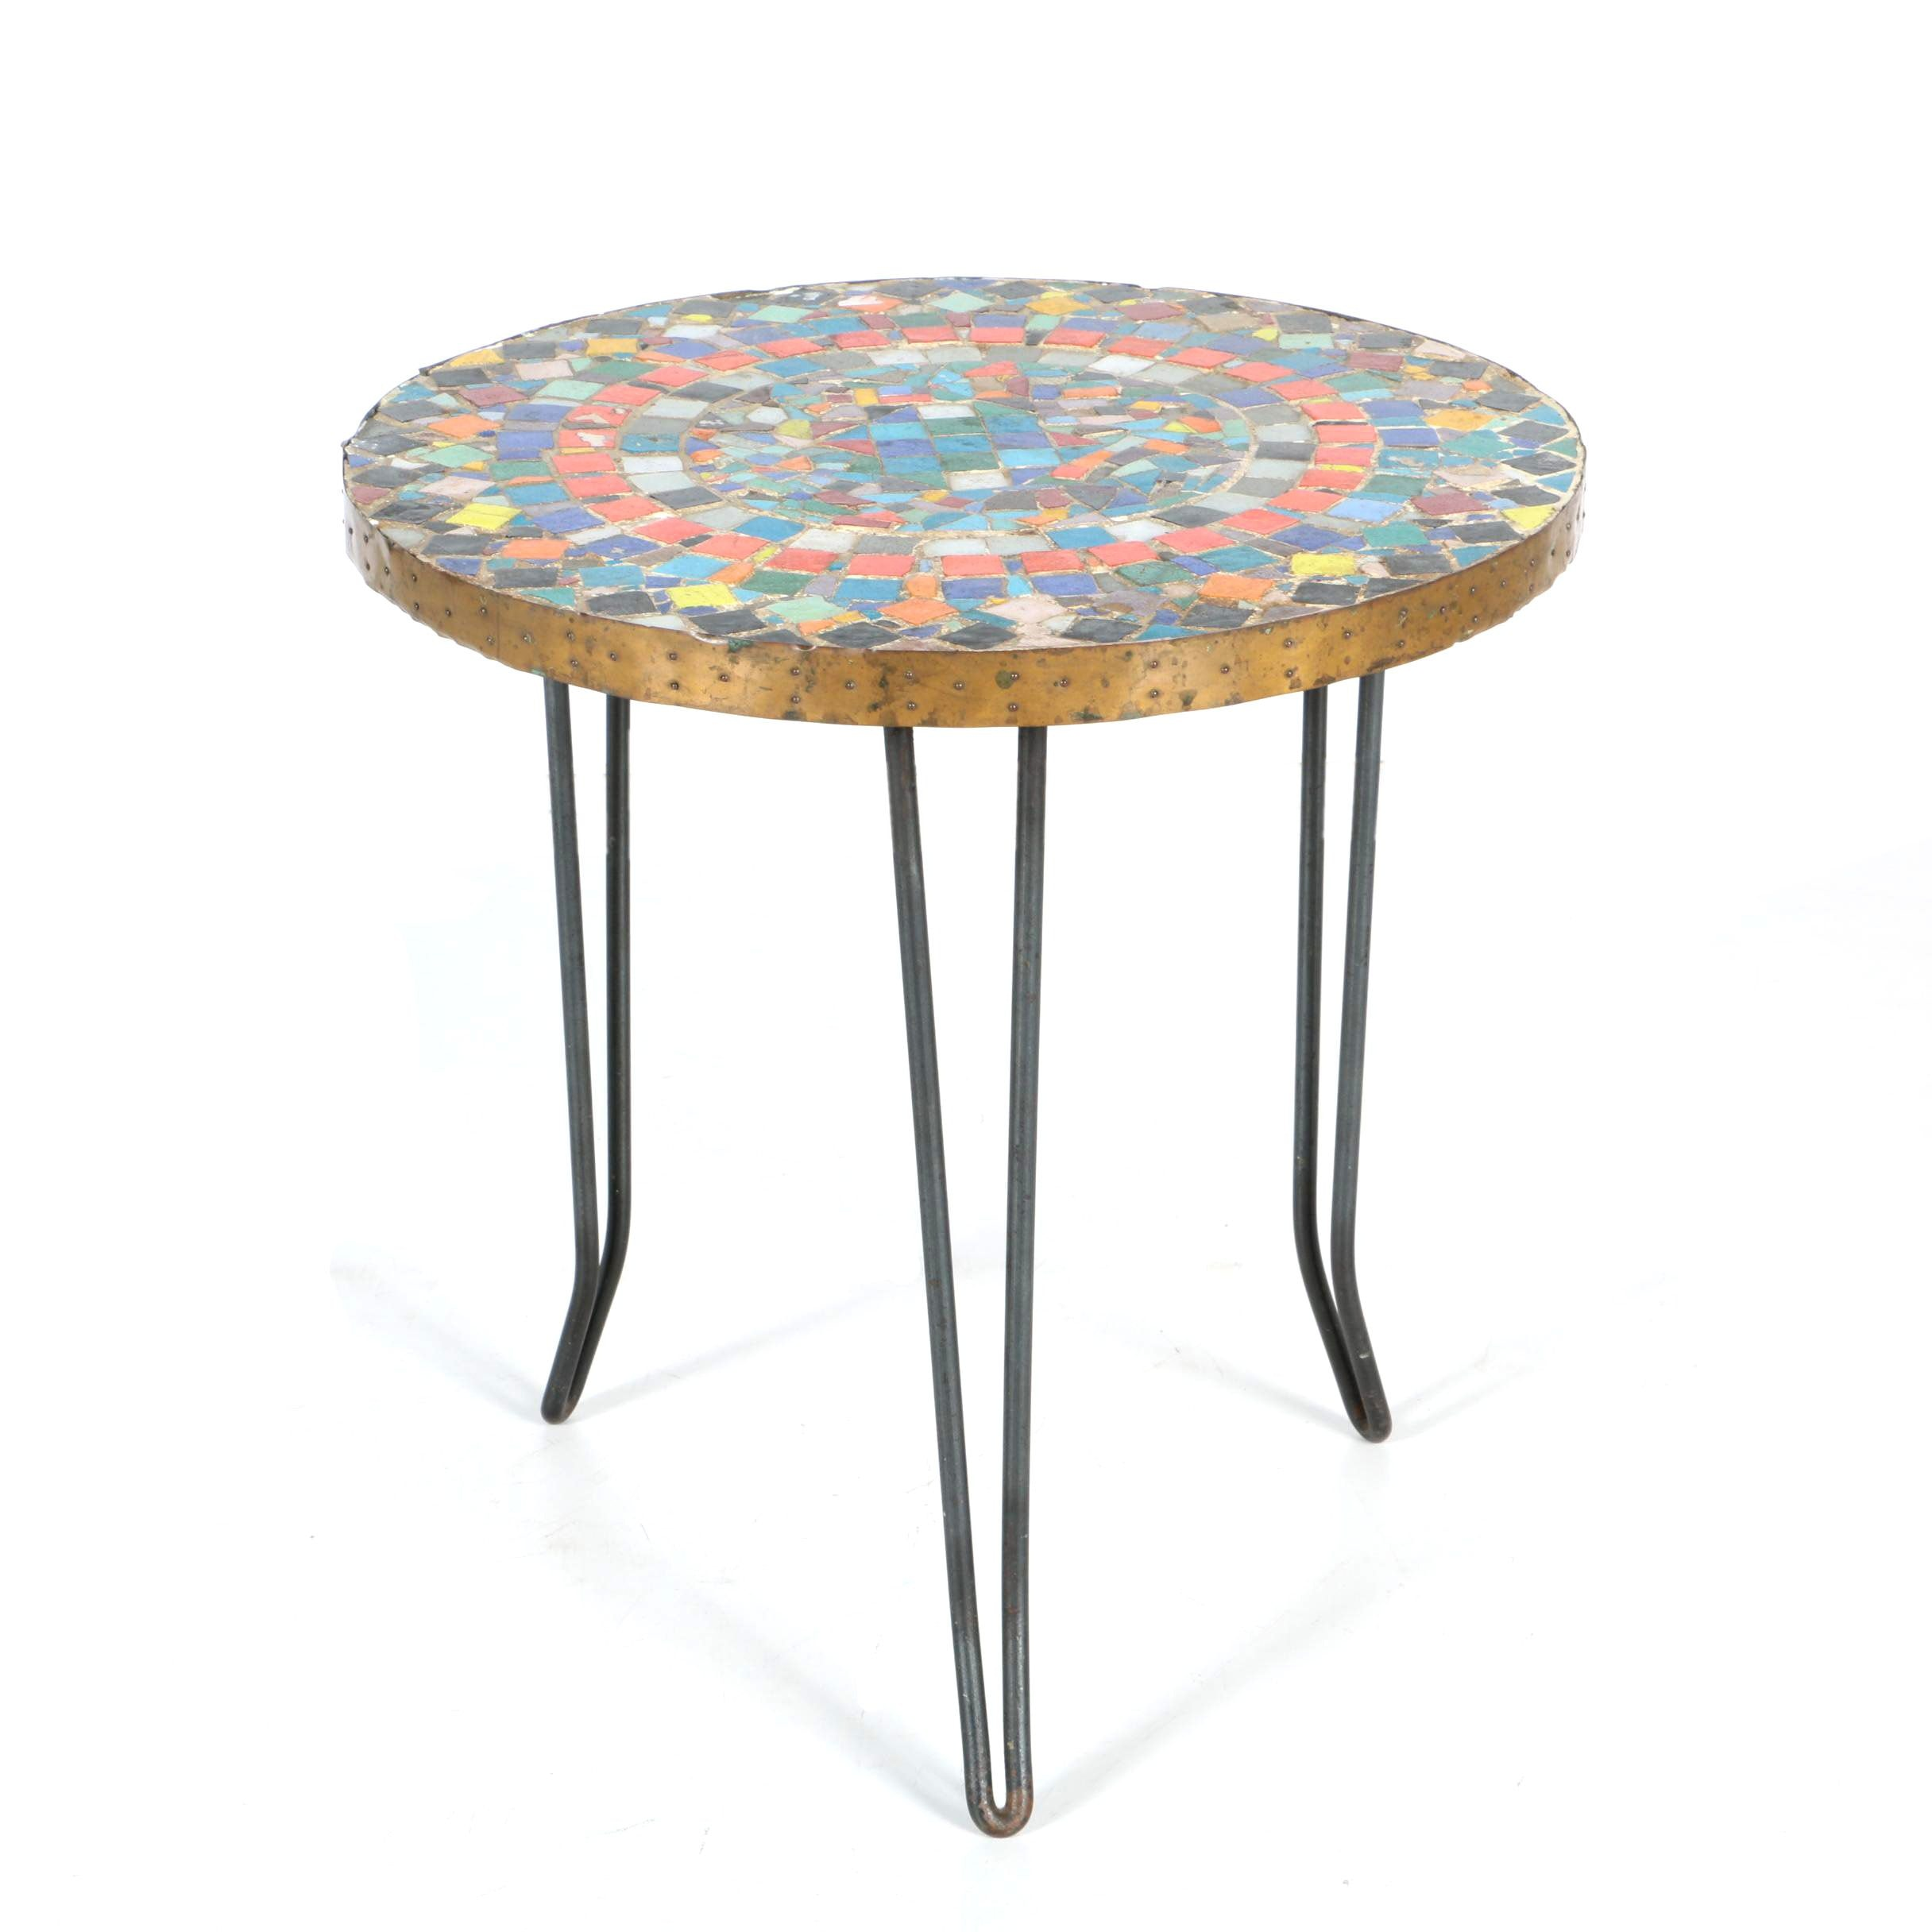 Leona Volpe Style Mid Century Modern Mosiac Tiled Table